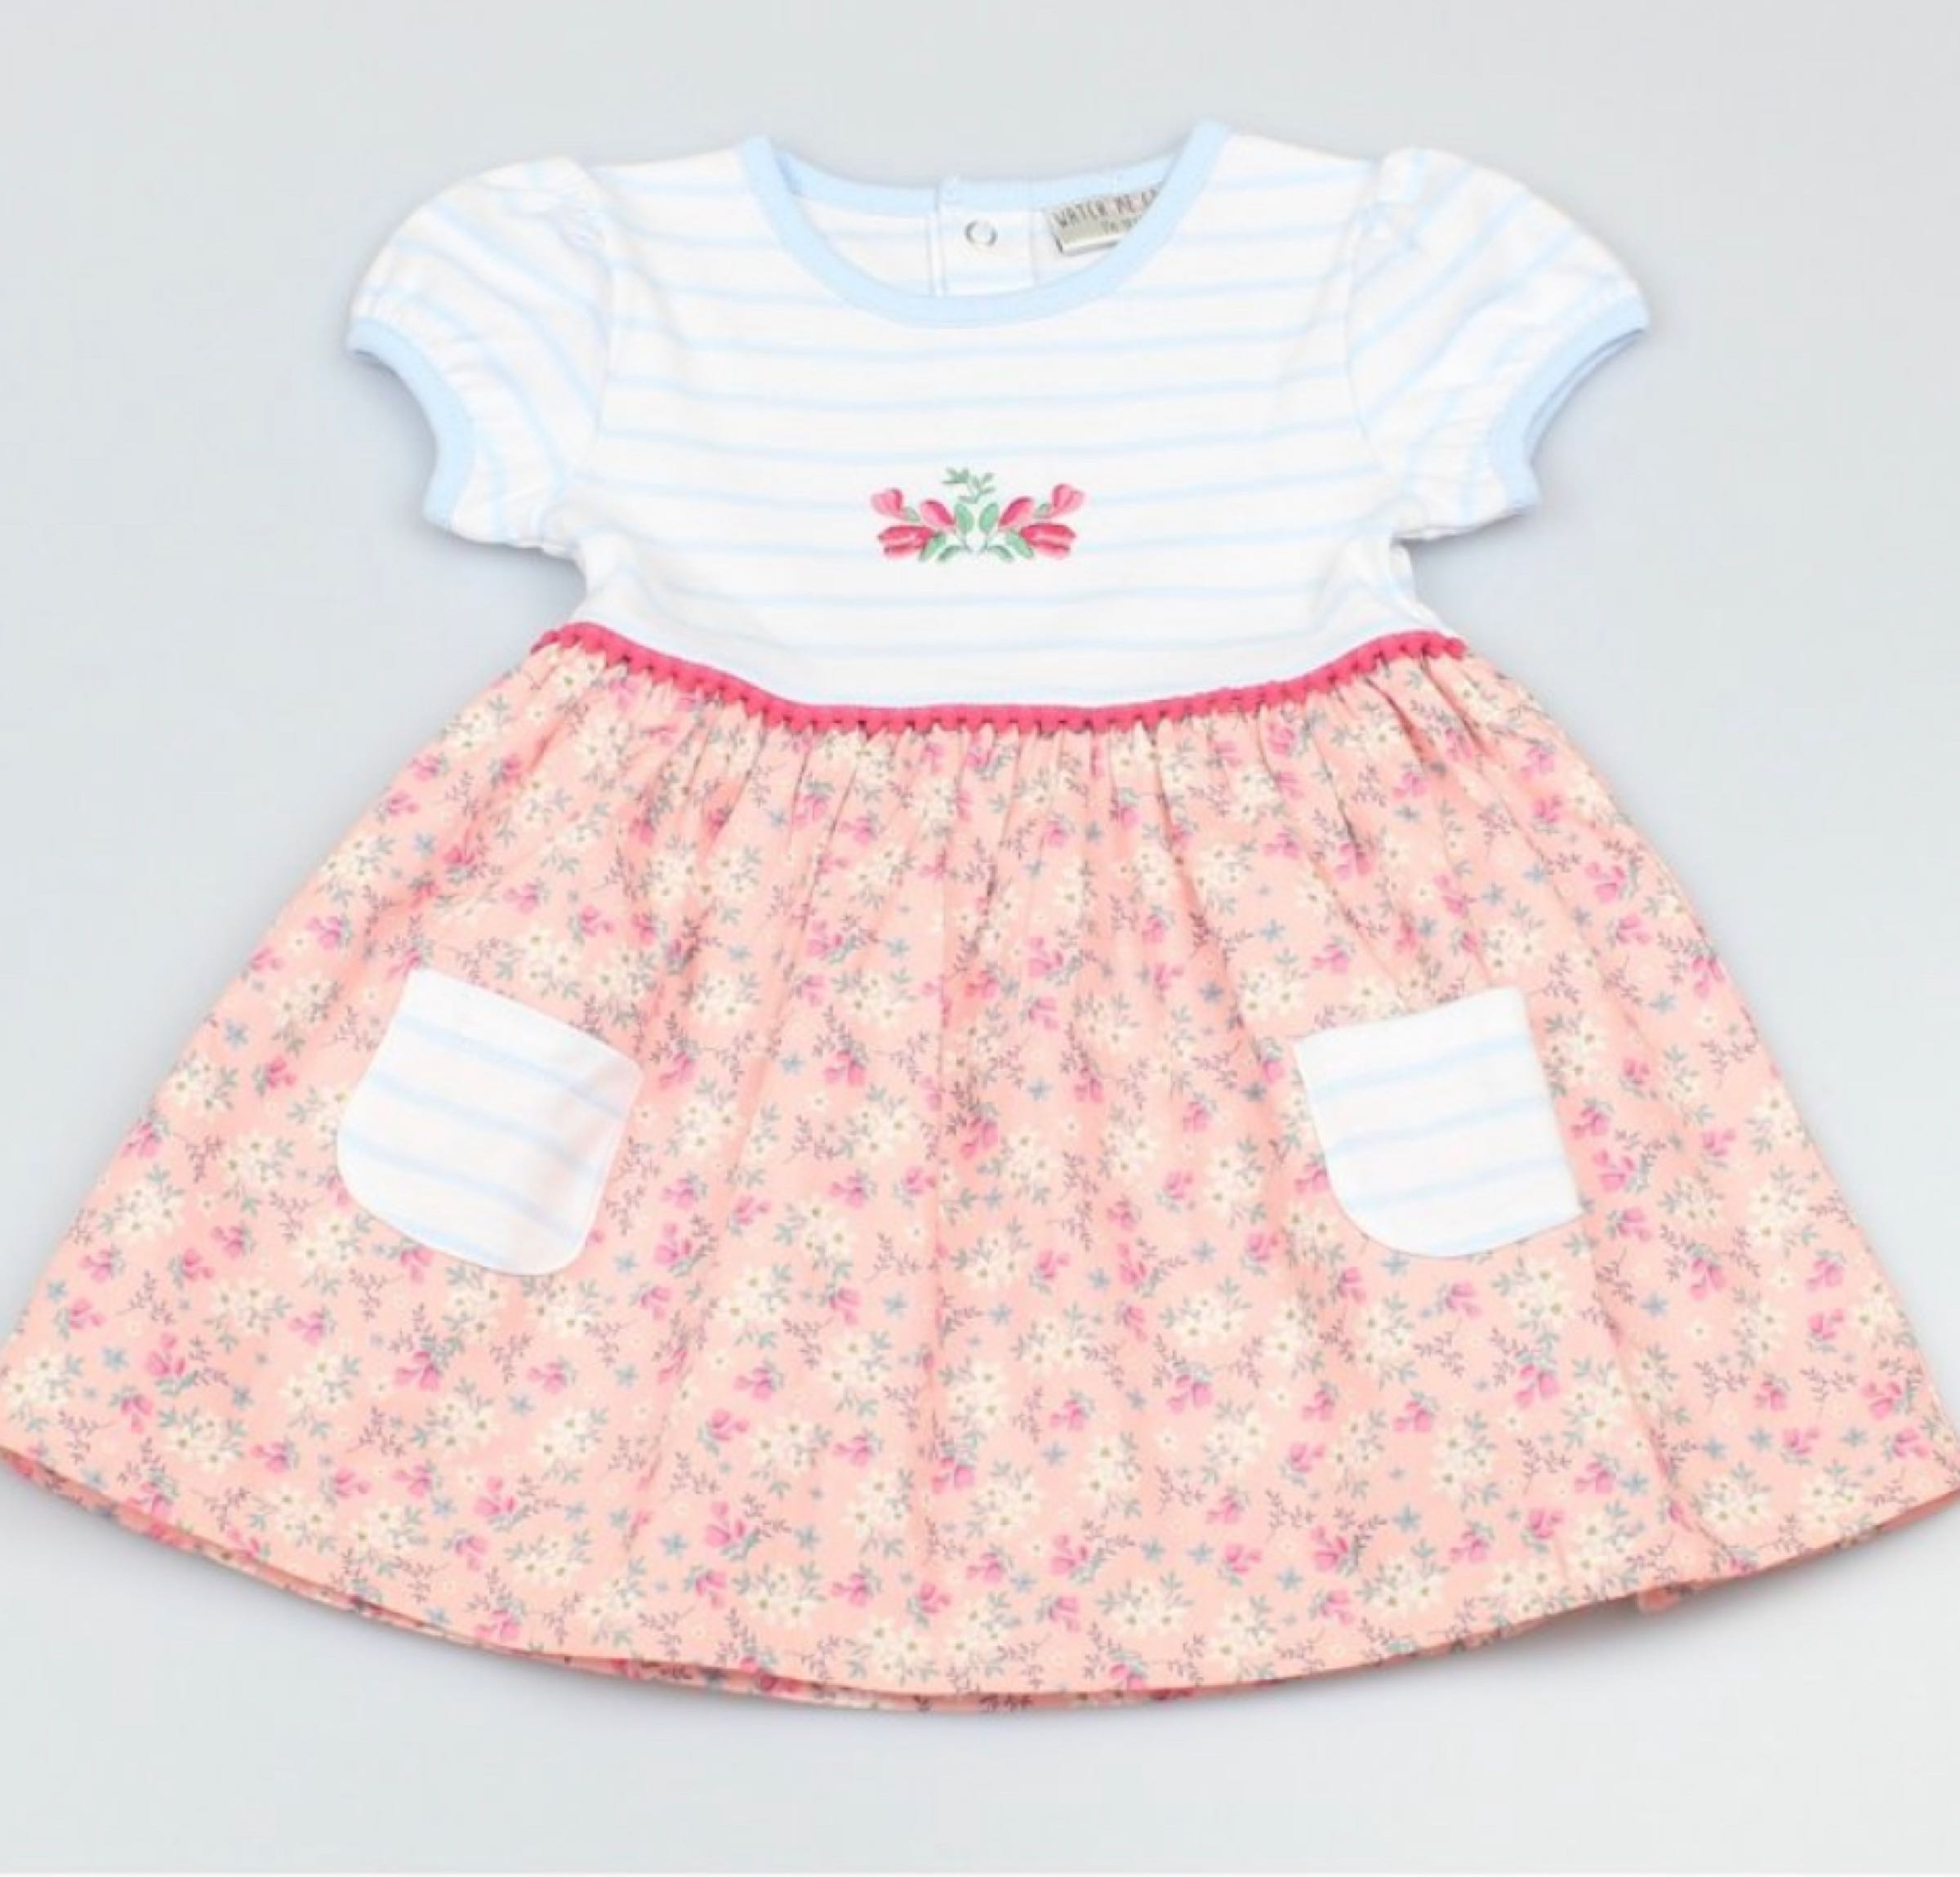 Baby girls floral lined dress